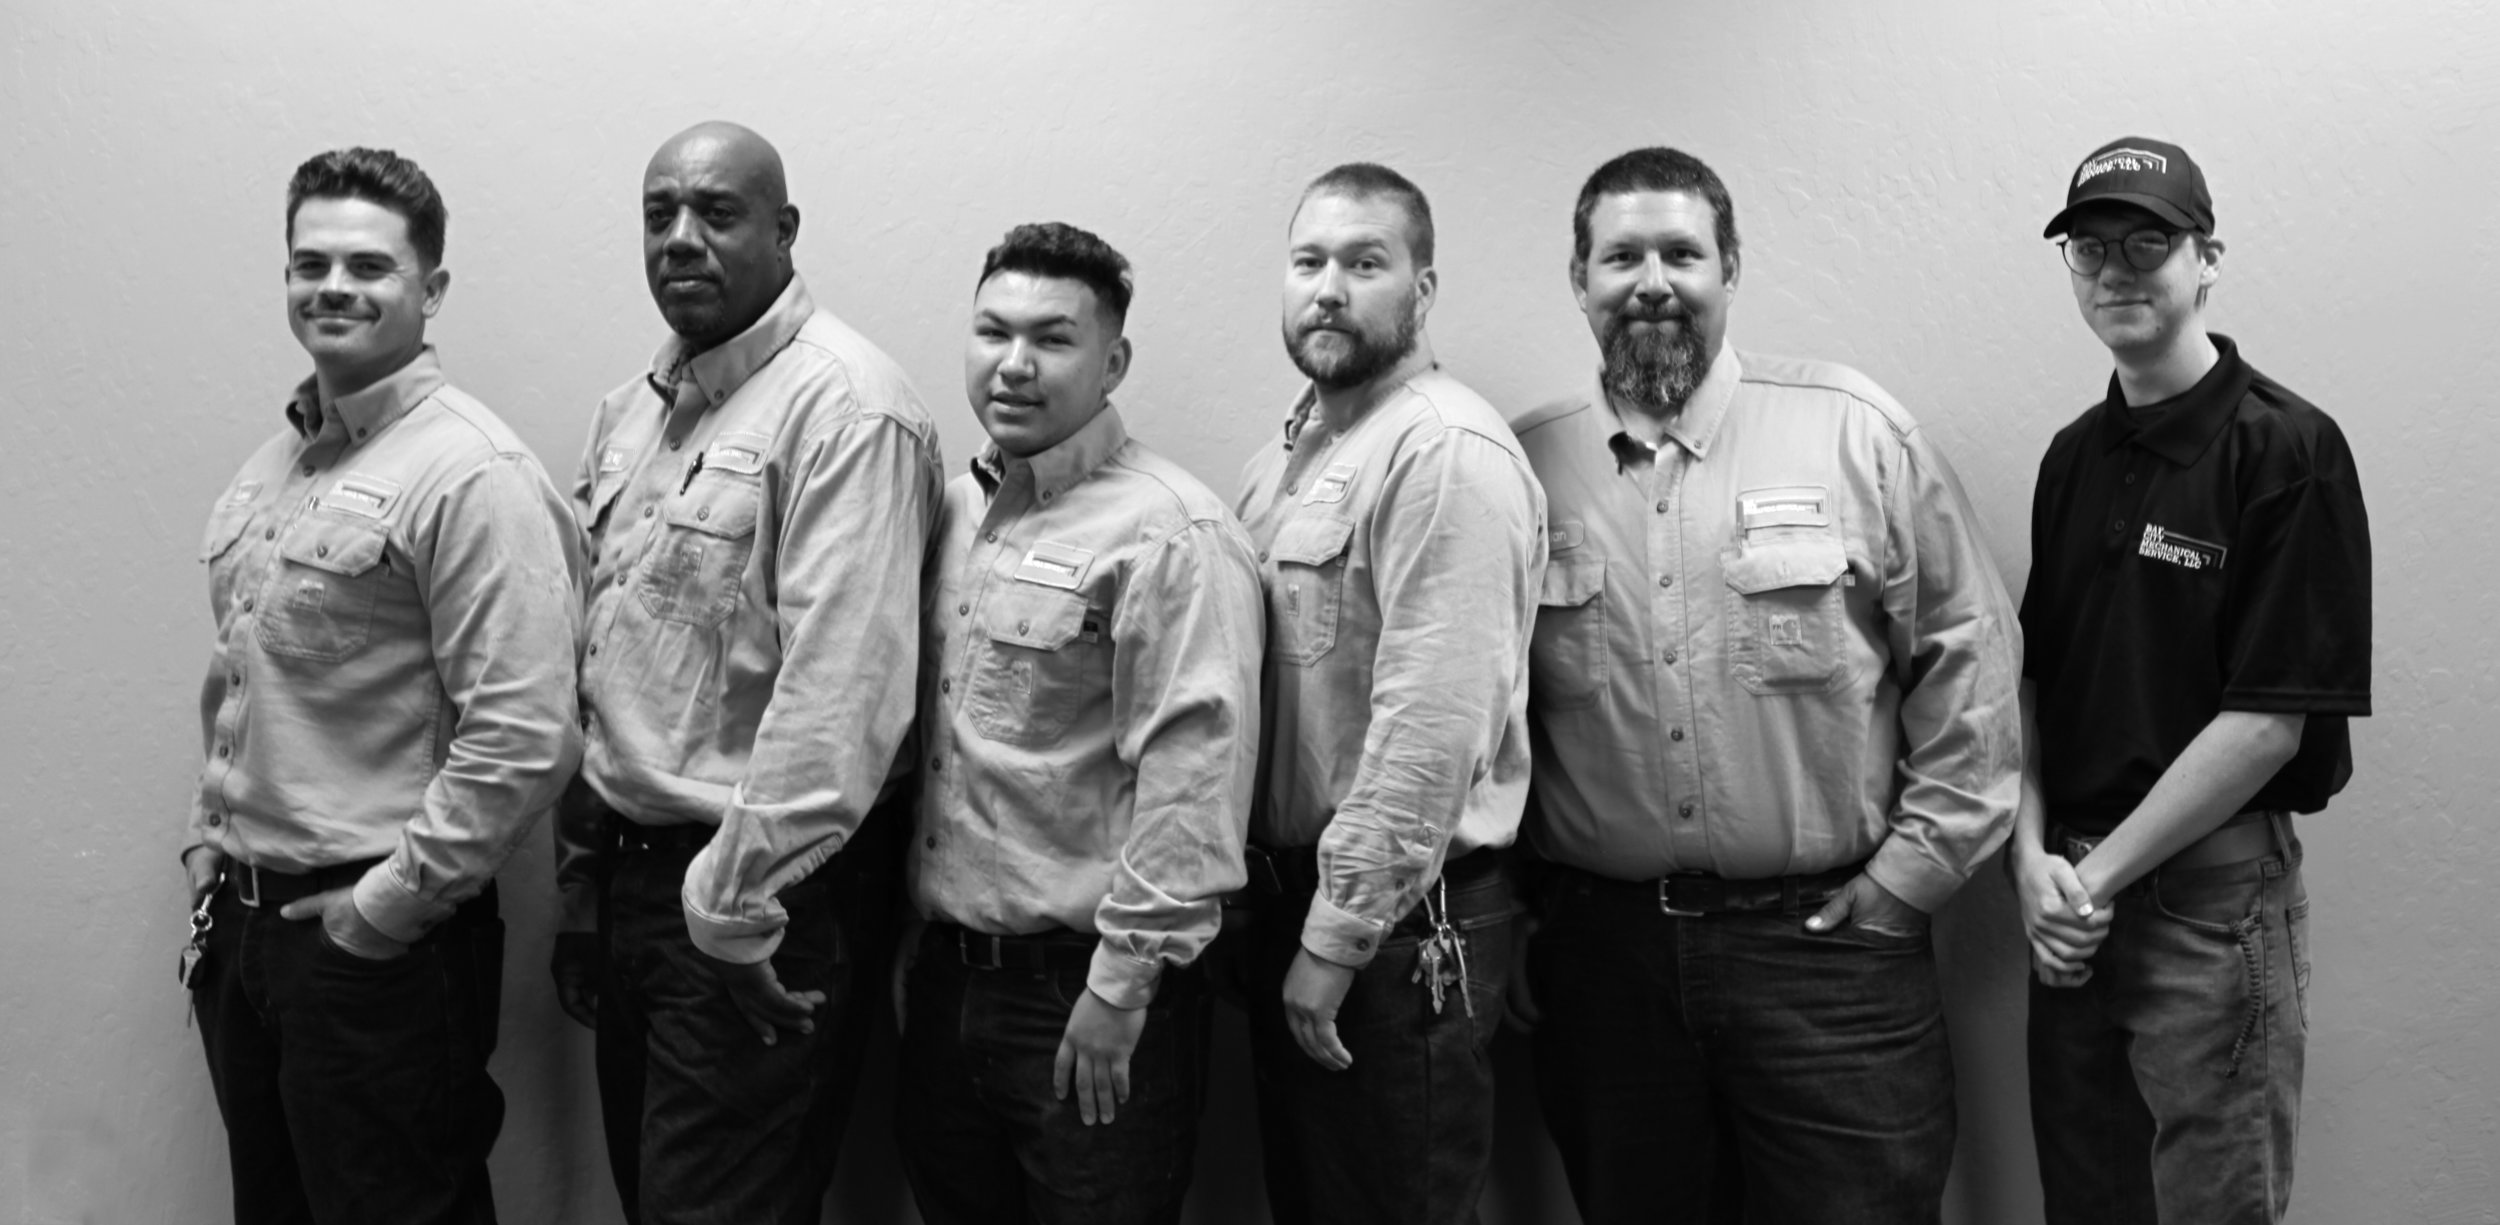 Field Technicians  (L to R) Travis Dilley, Greg Golston, Anthony Rivero, Ben England, Brian Harpman, Aiden Wallace